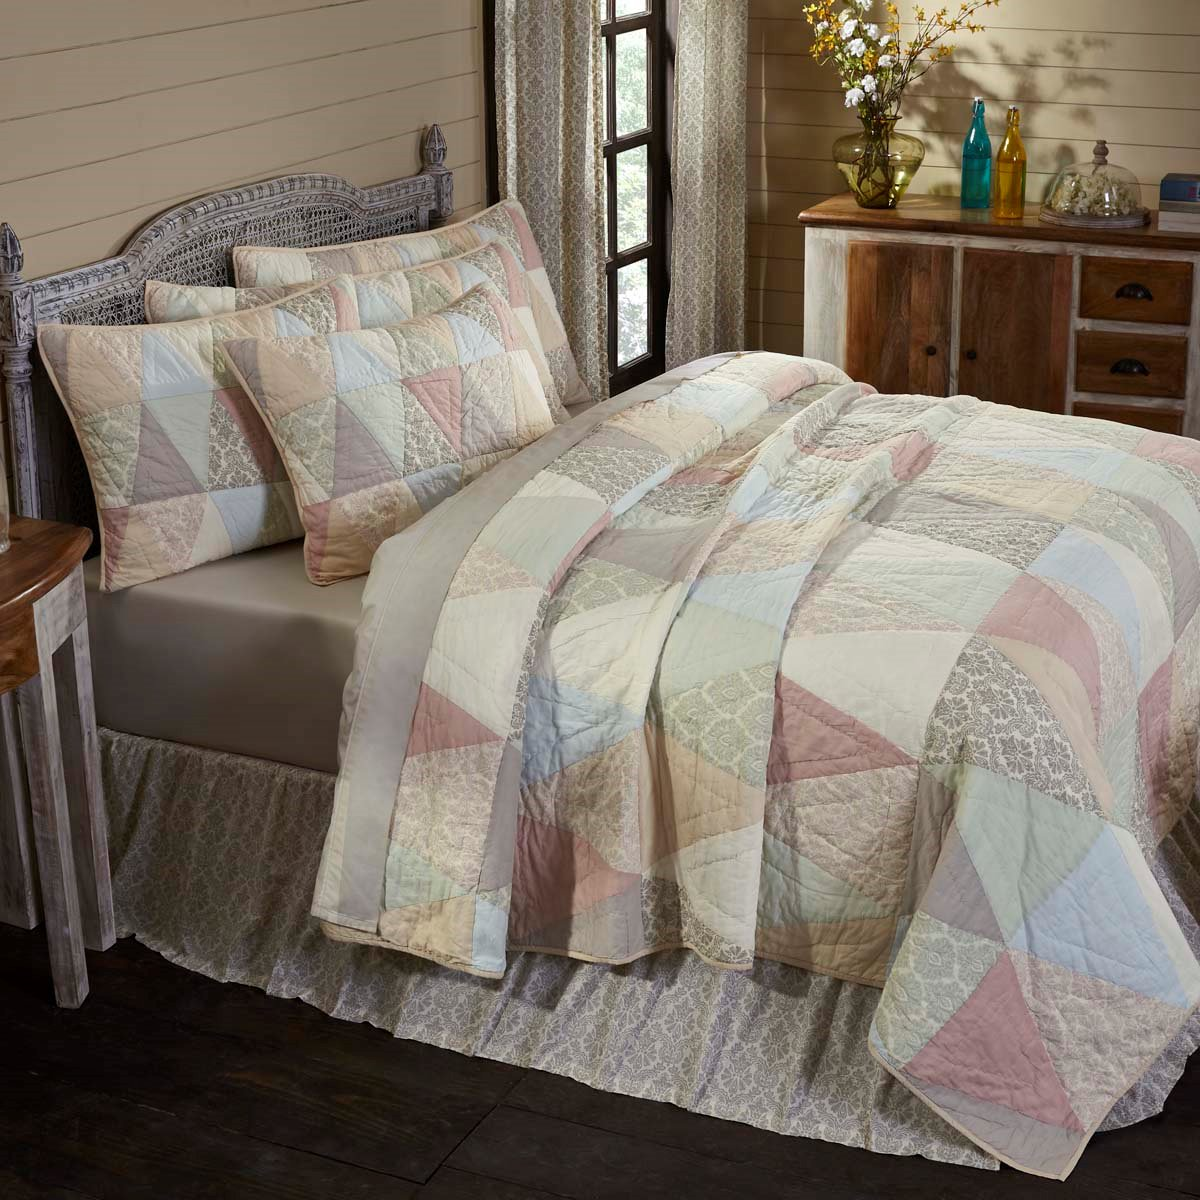 Ava King Quilt 95x105